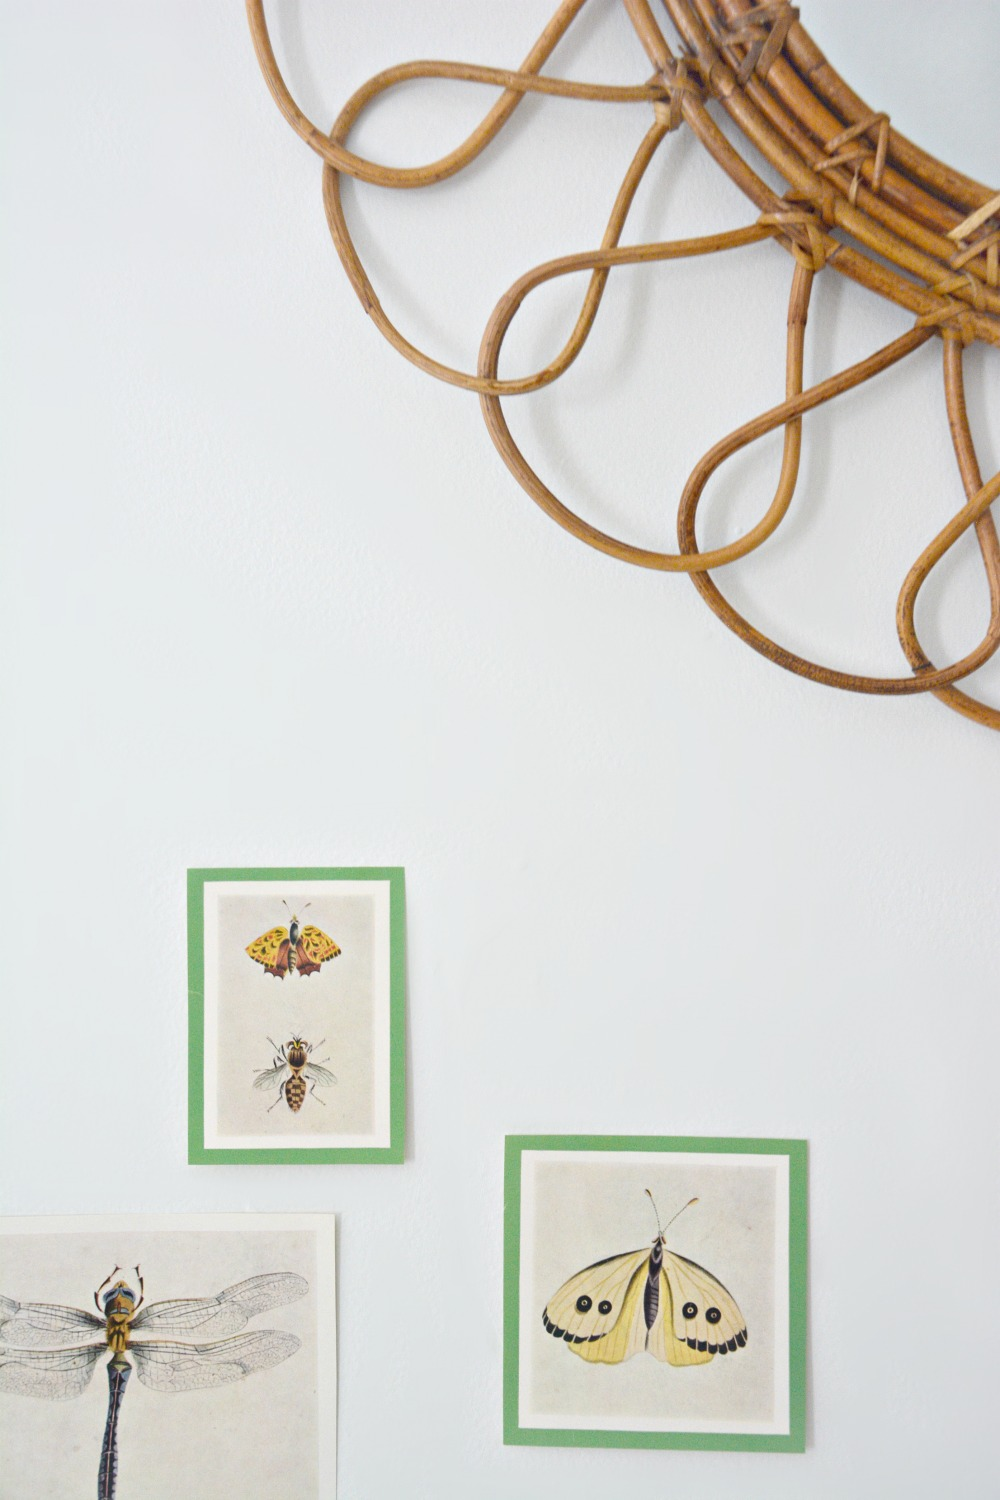 insect-book-plates-rattan-mirror